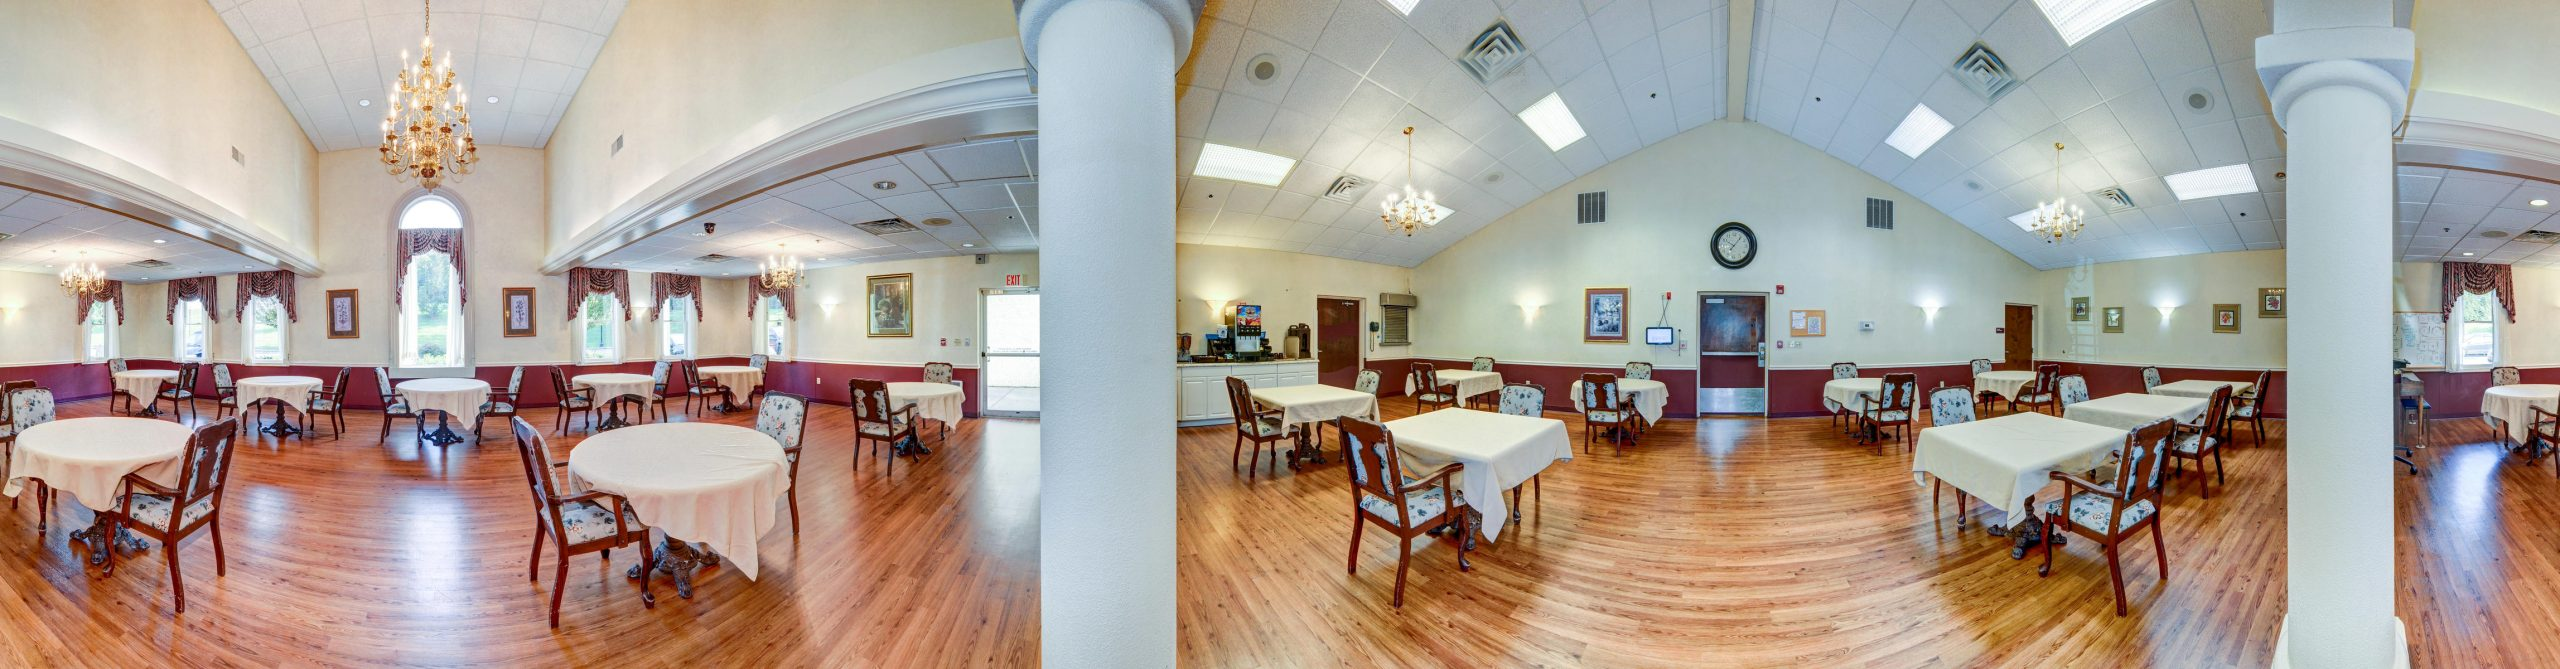 Panoramic view of Stonerise Lewisburg dining room with columns